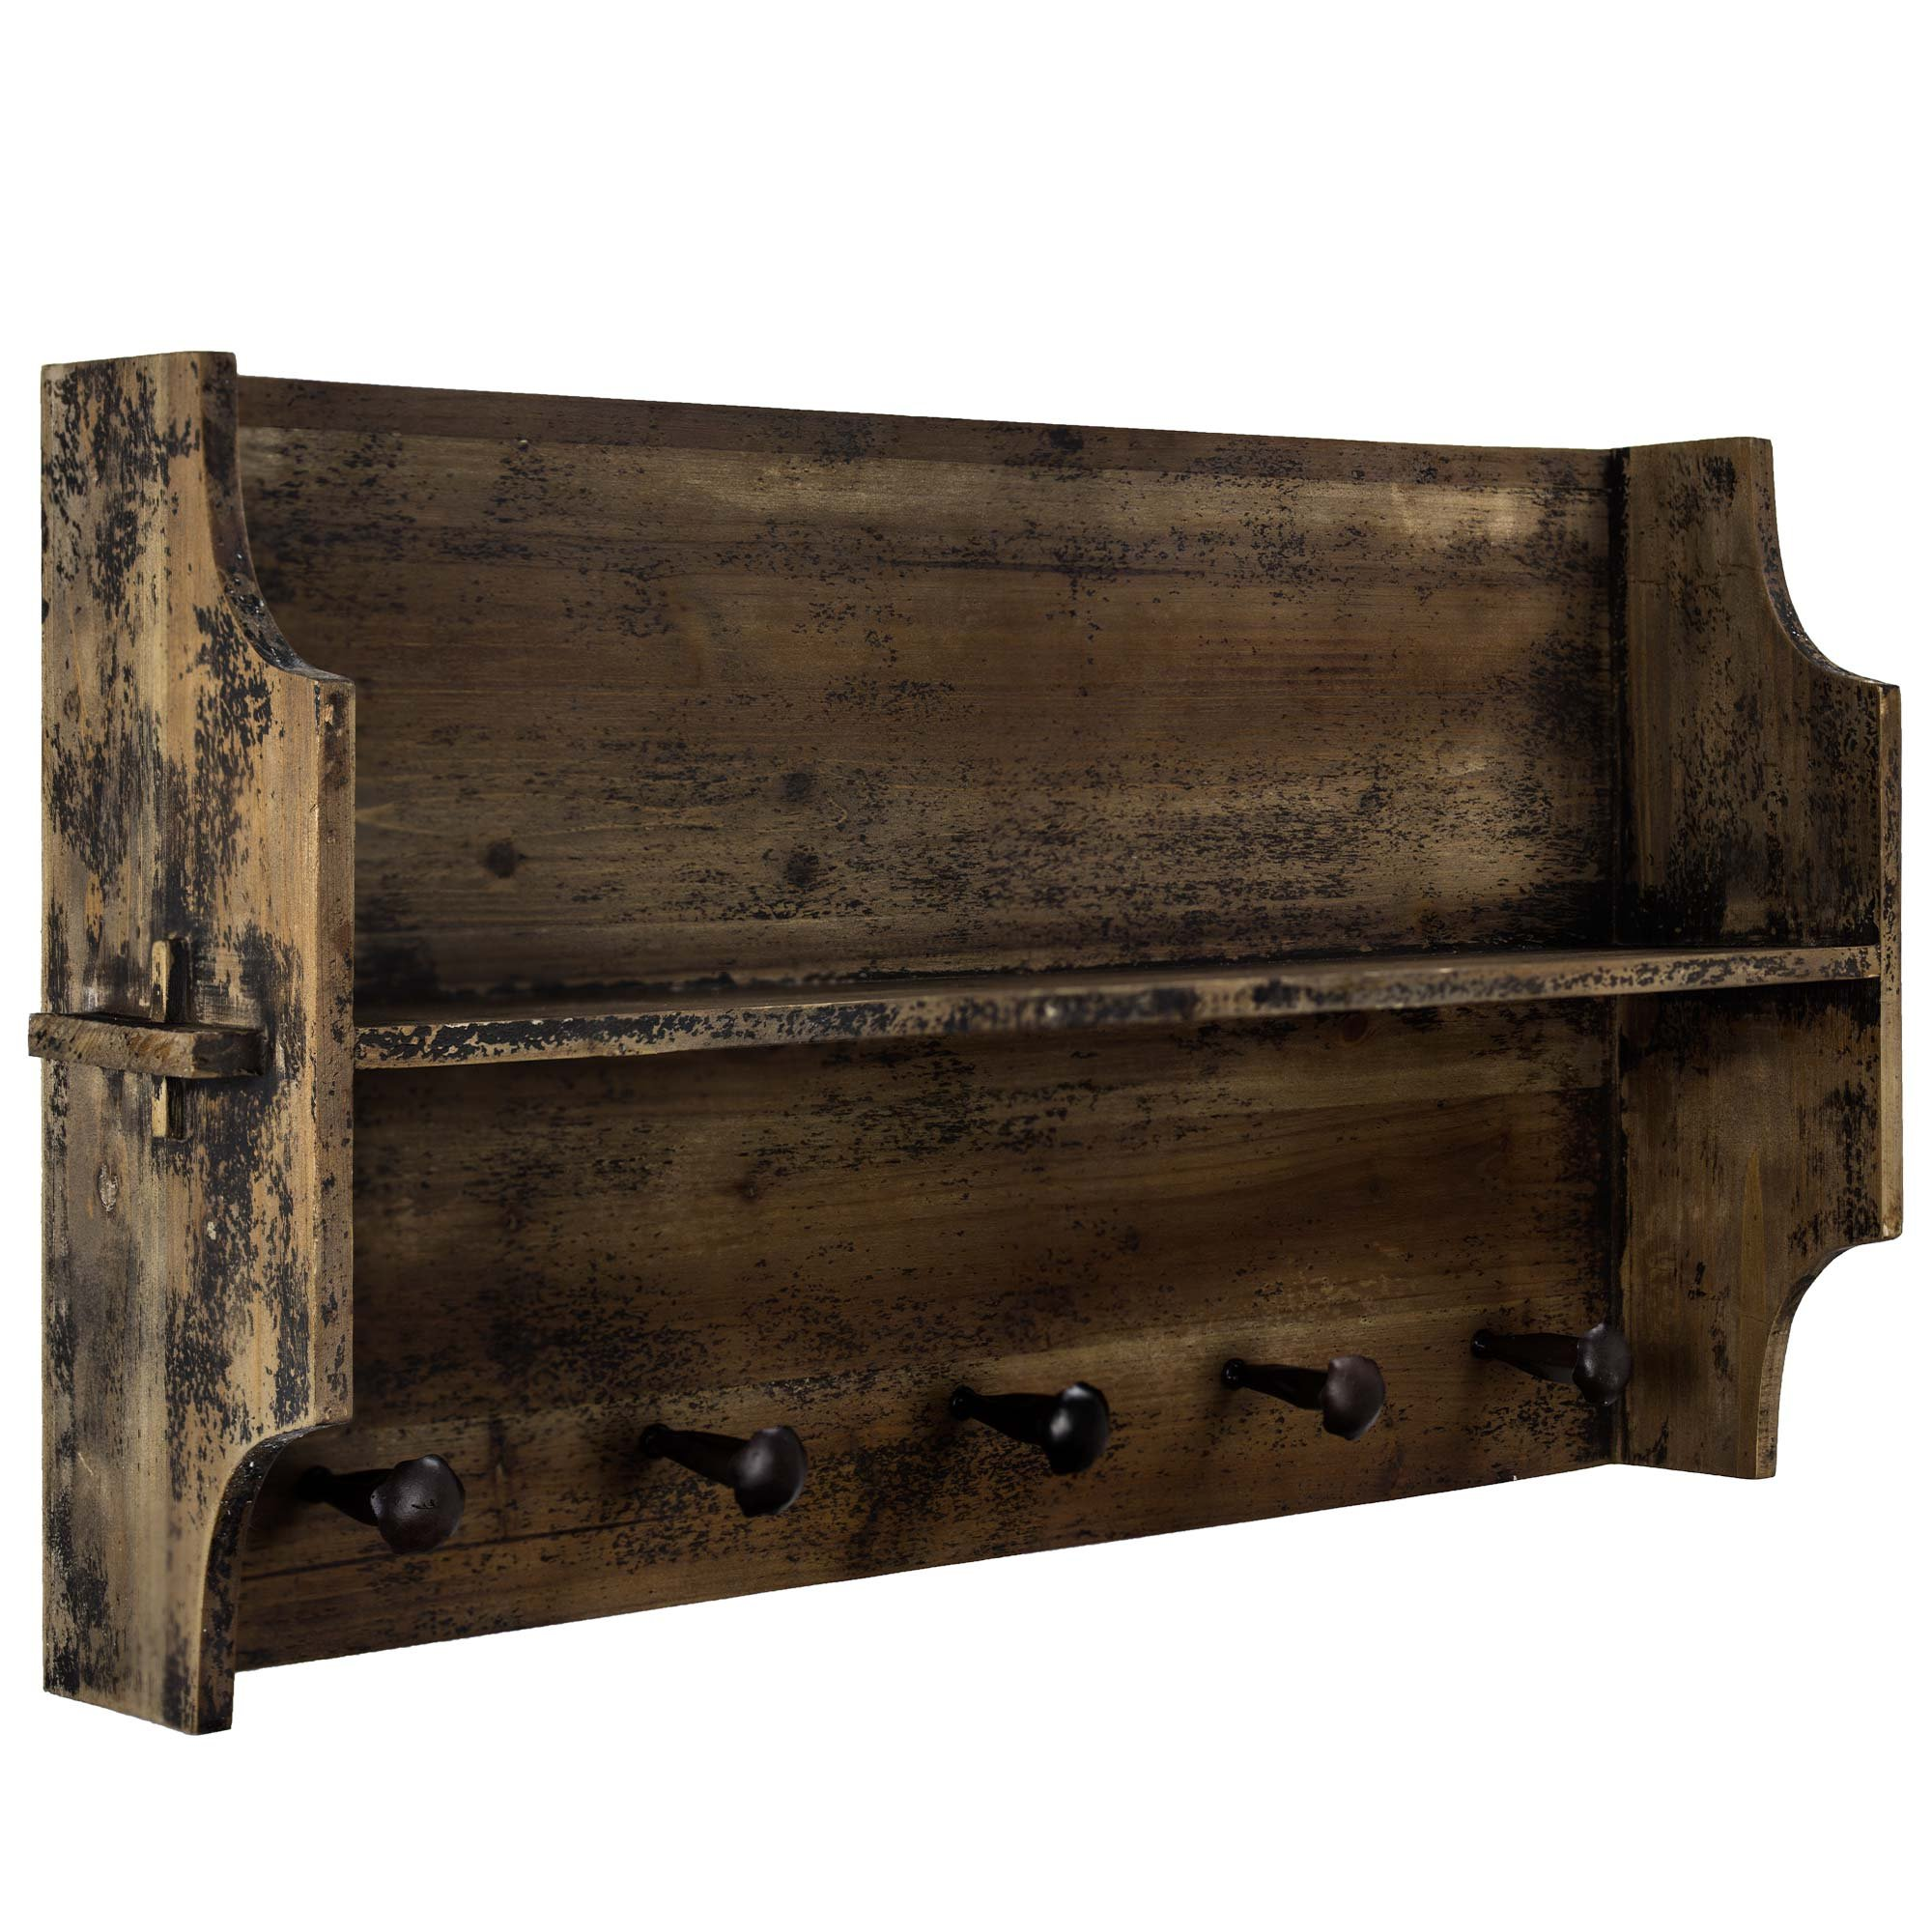 American Art Décor Rustic Wood Storage Shelf with 5 Hook Coat Rack Vintage Country Farmhouse Decor